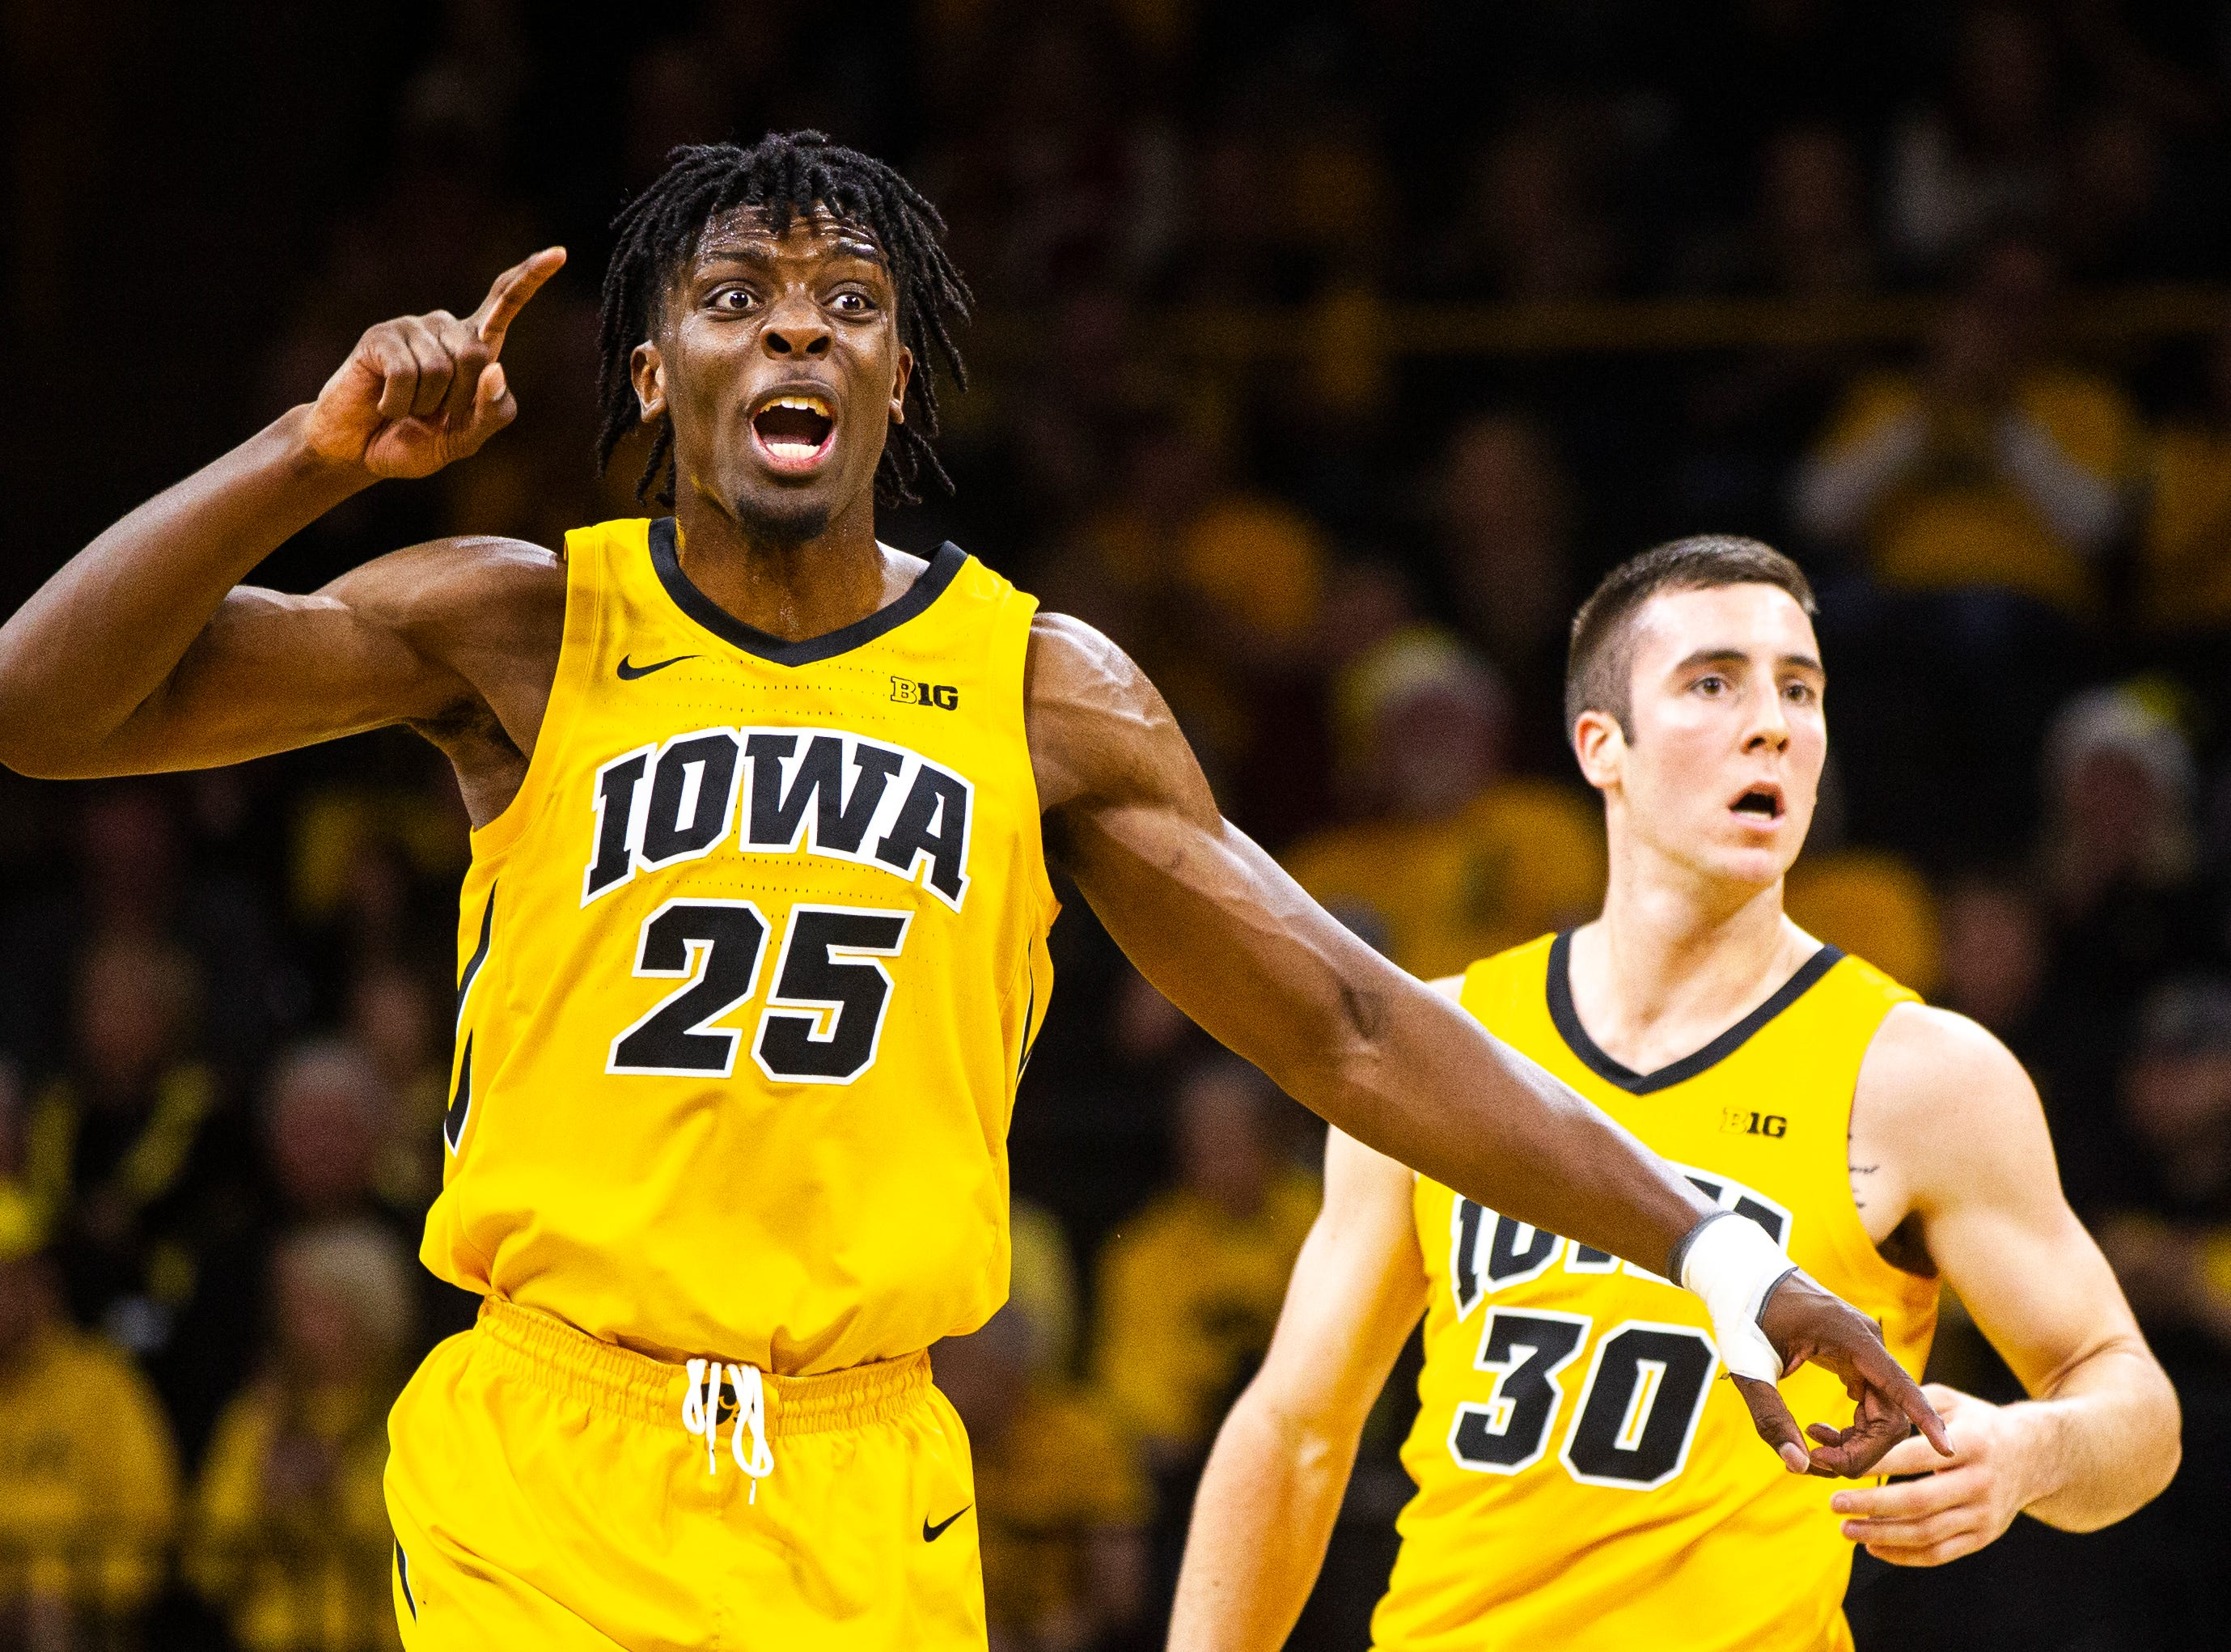 Iowa forward Tyler Cook (25) calls out to teammates during a NCAA Big Ten Conference men's basketball game on Friday, Nov. 30, 2018, at Carver-Hawkeye Arena in Iowa City.